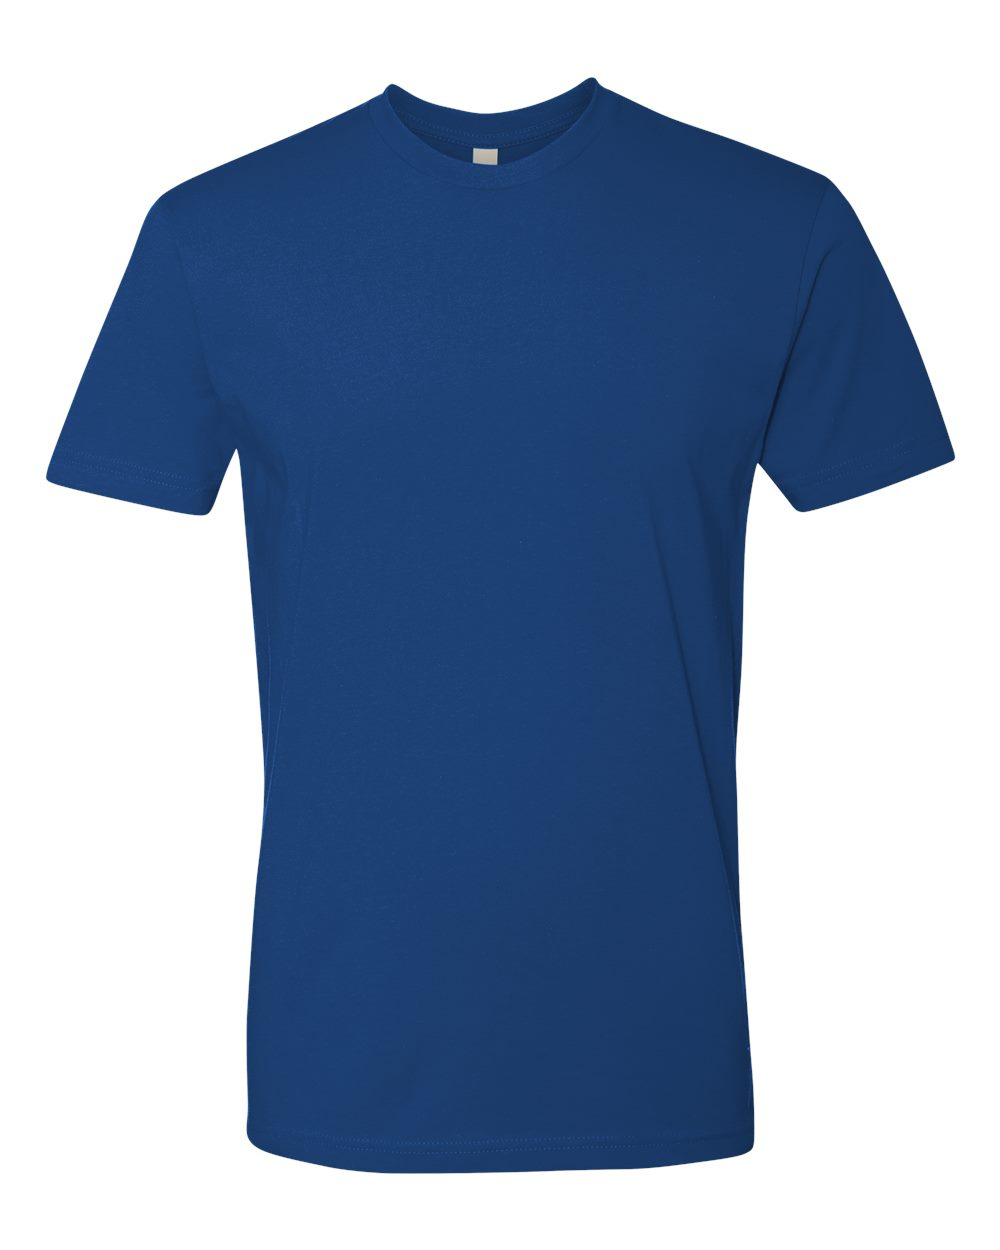 Next_Level_3600_Royal_Blue_Front_High.jpg